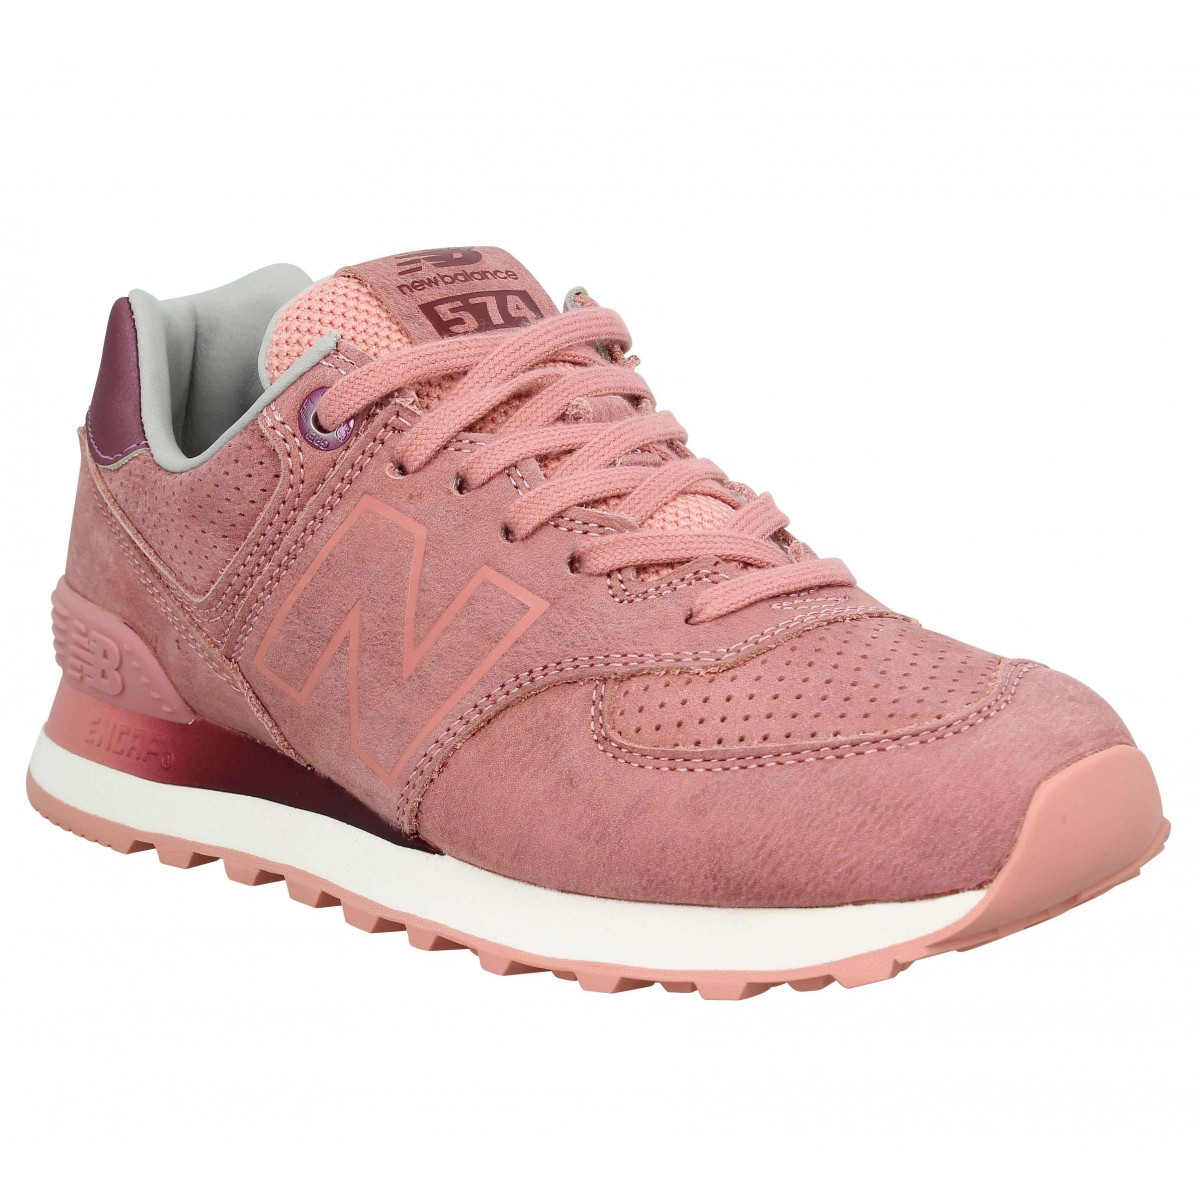 Baskets NEW BALANCE 574 velours Femme Peach